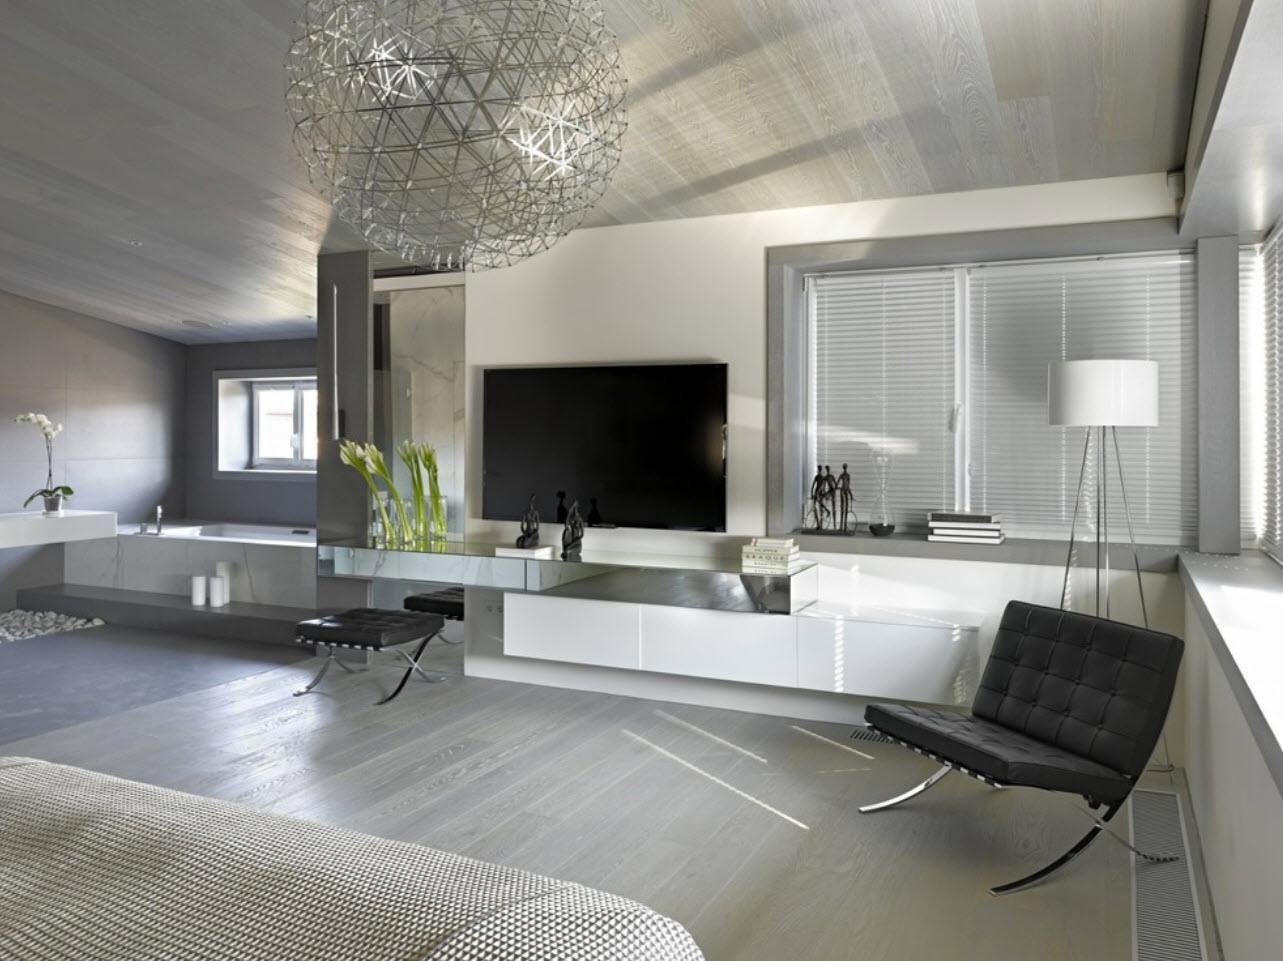 Silver and gray color theme for the large living room with modern furniture